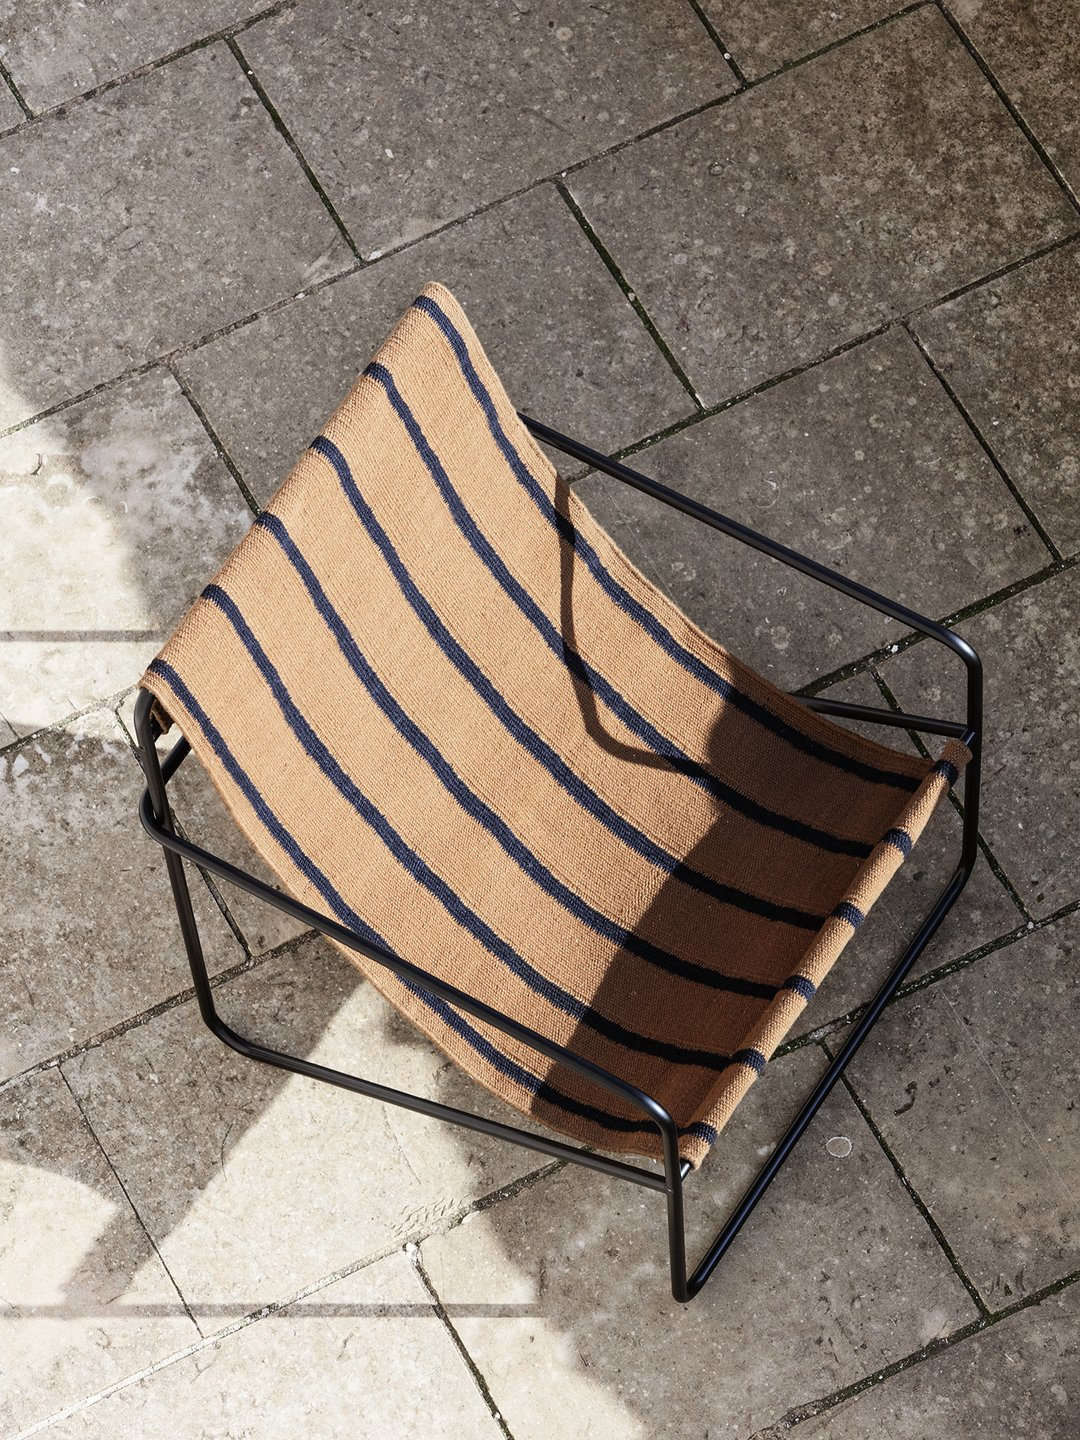 A detail of the Desert Lounge Chair in Black/Stripes; $345 from Lekker Home.